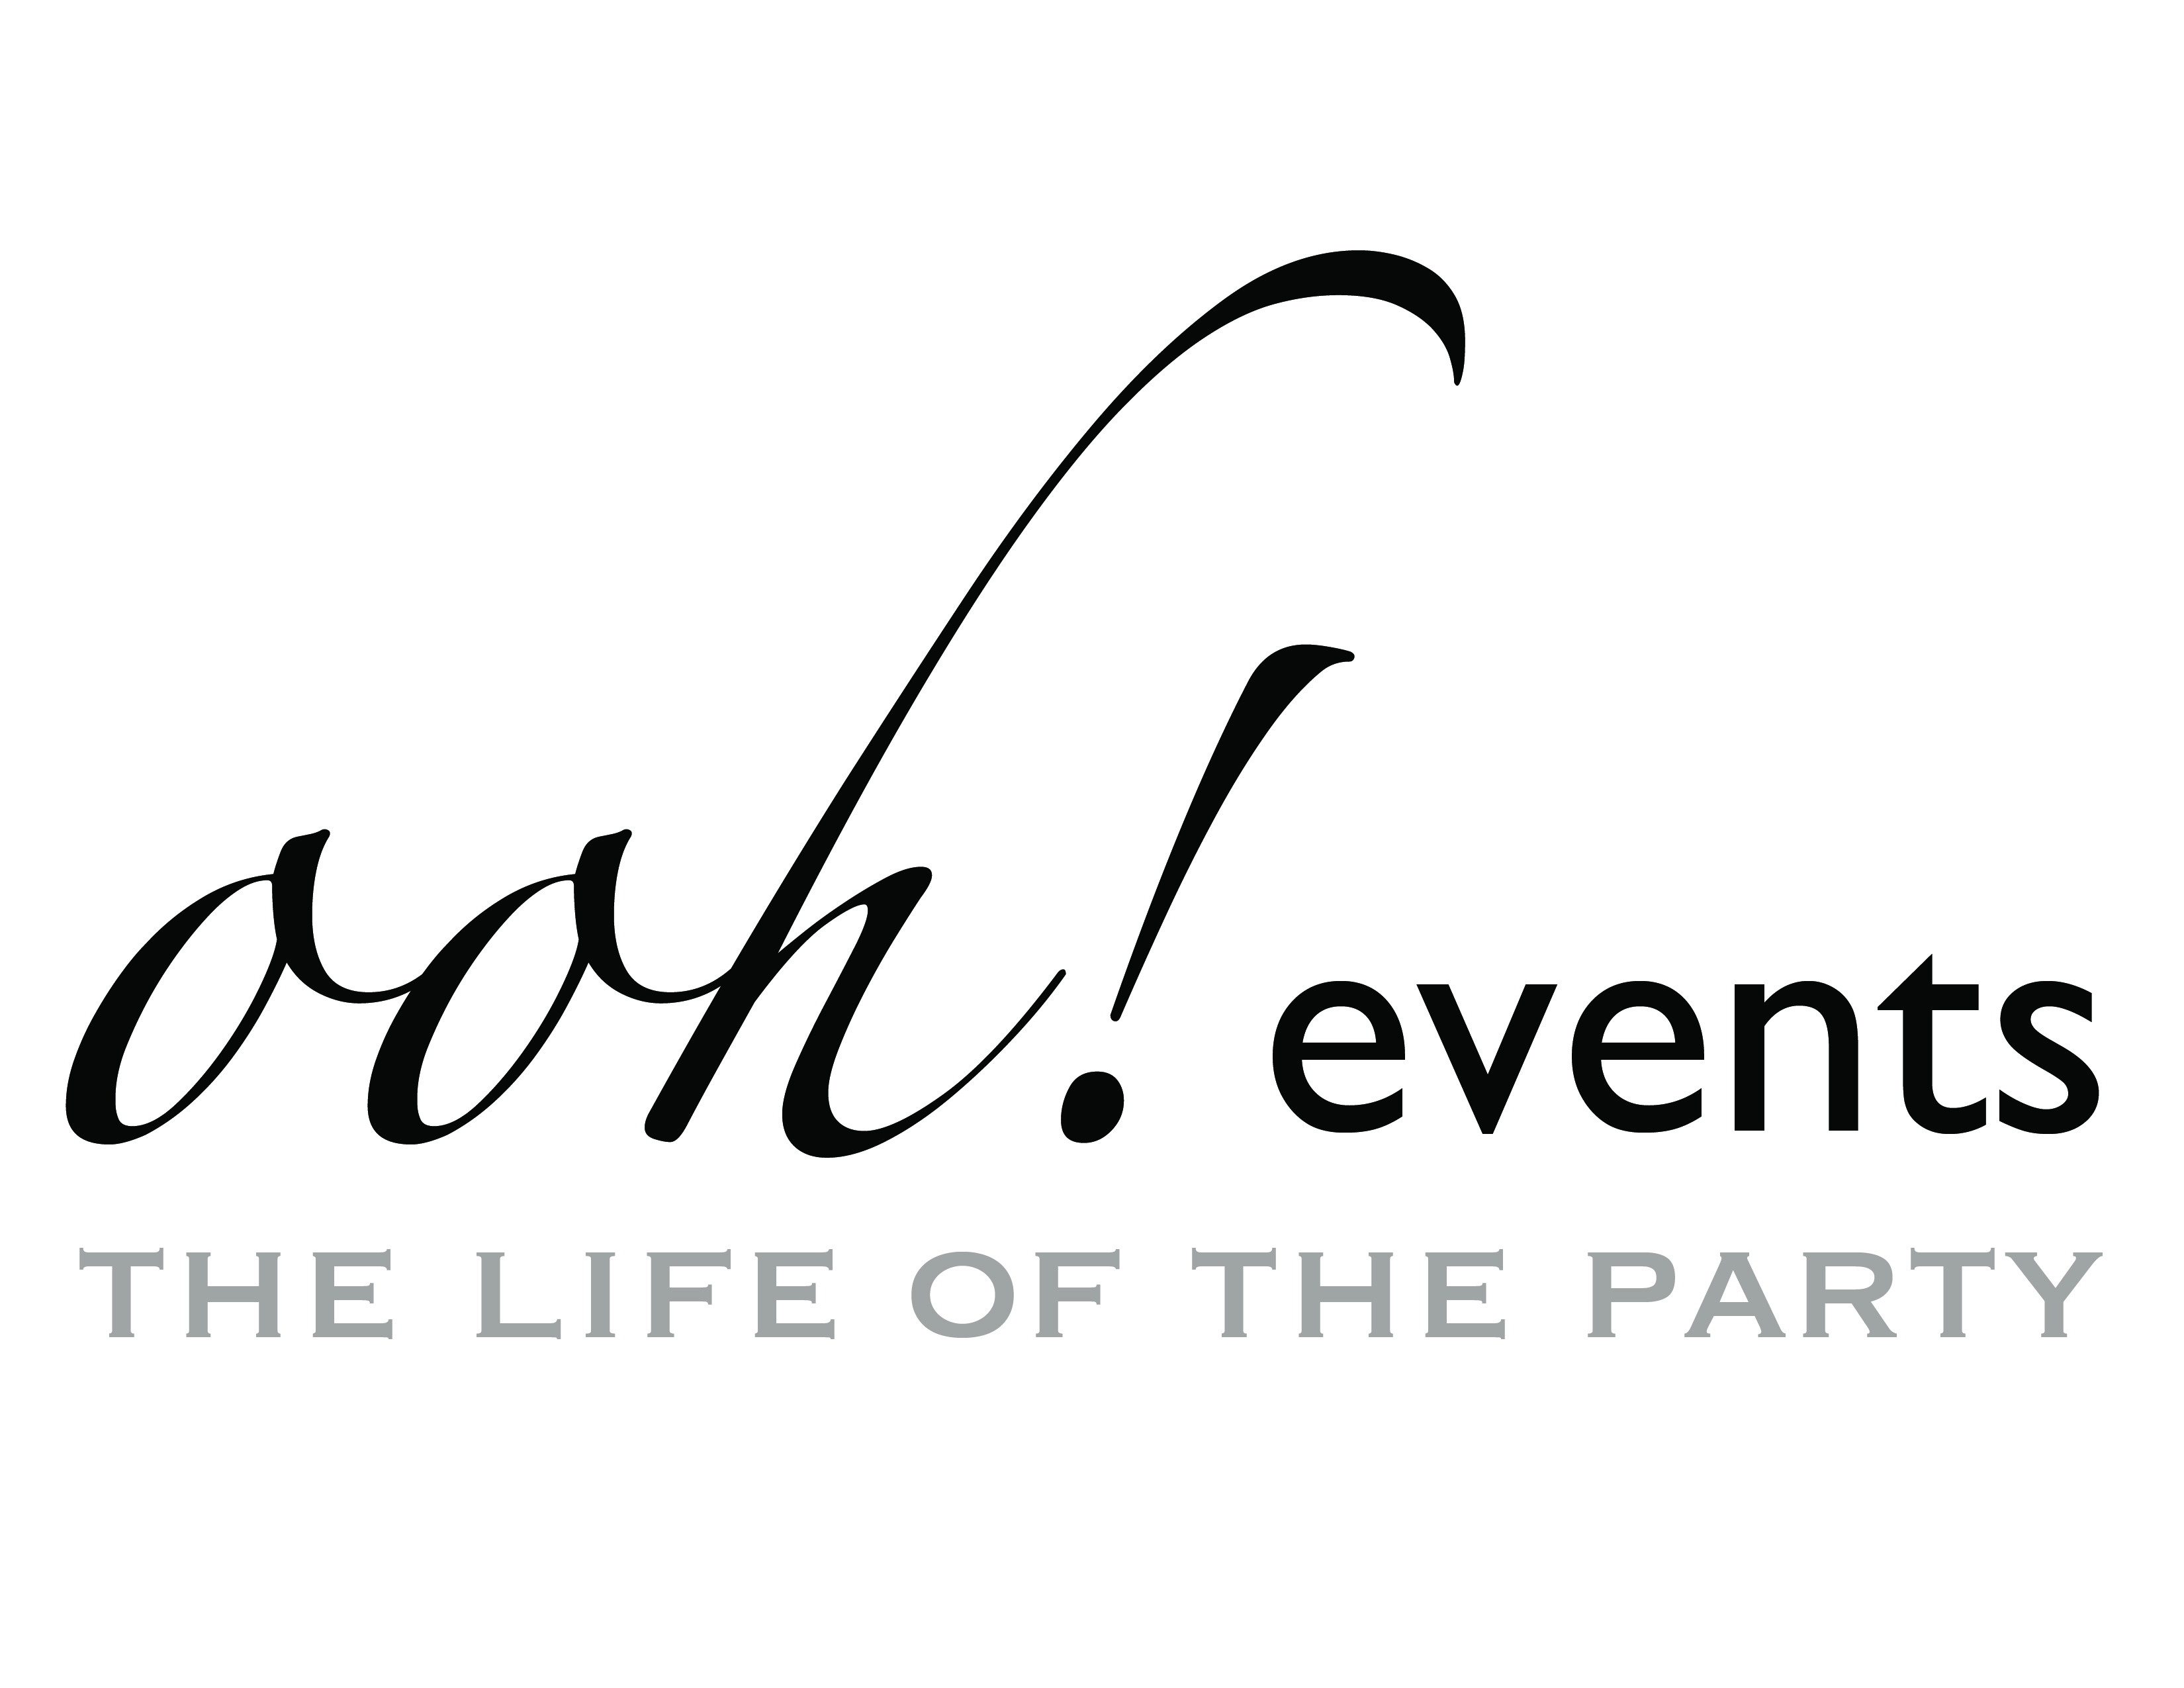 oohevents_logo-high-res